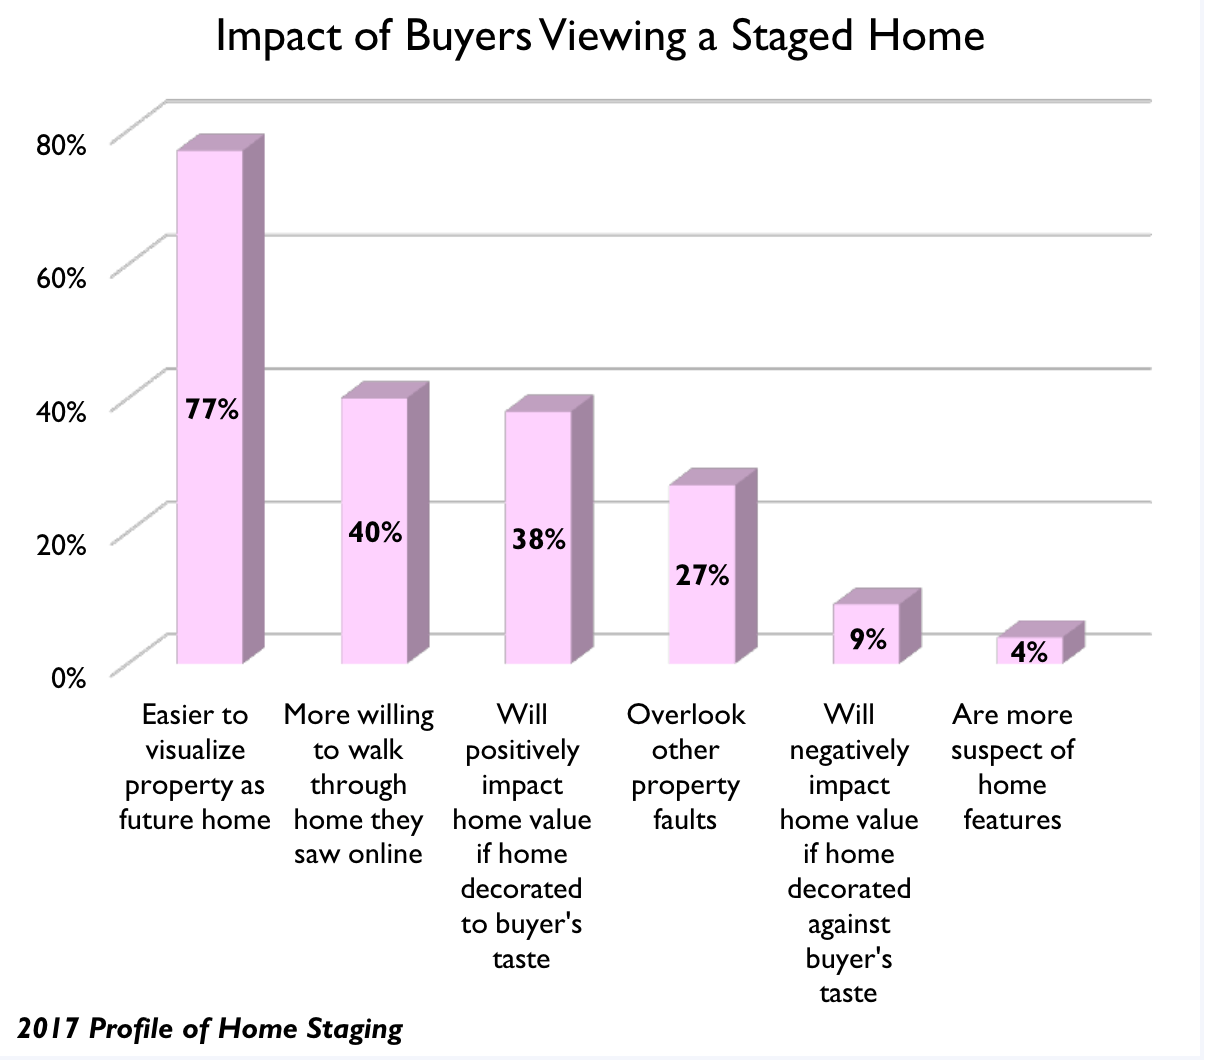 Chart showing impact of buyers viewing staging in home.